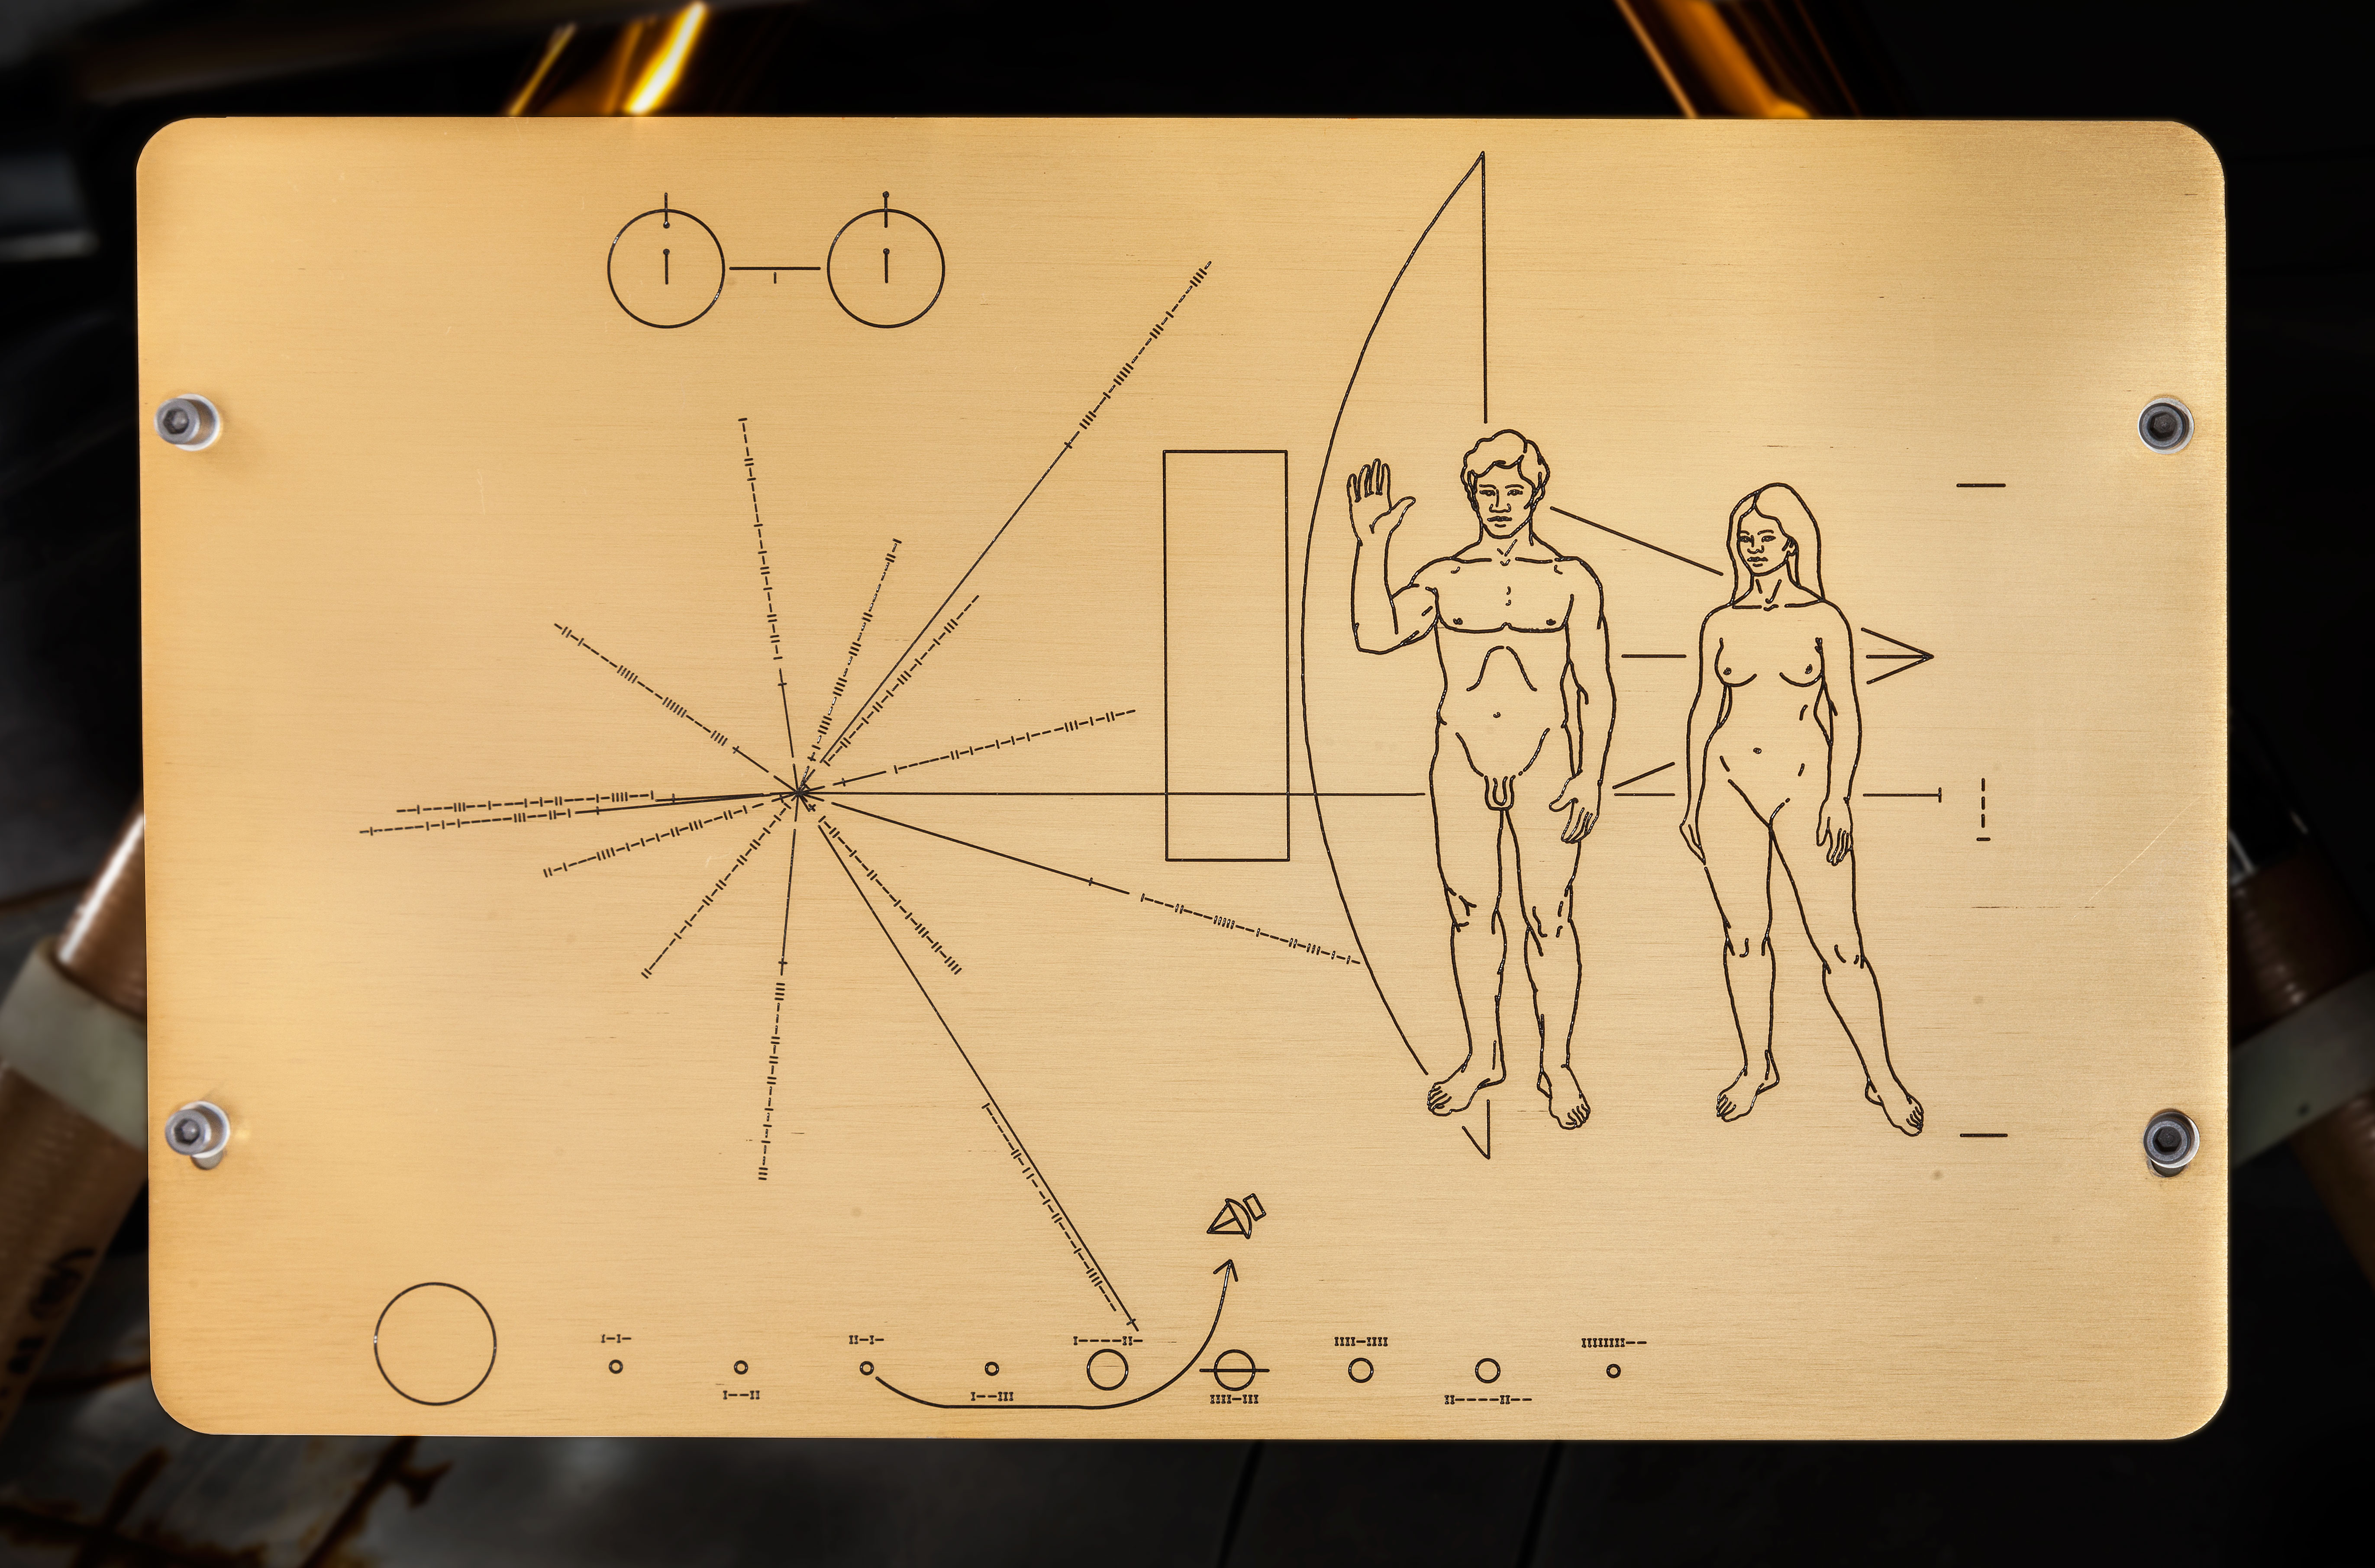 Close up of the Pioneer plaque.